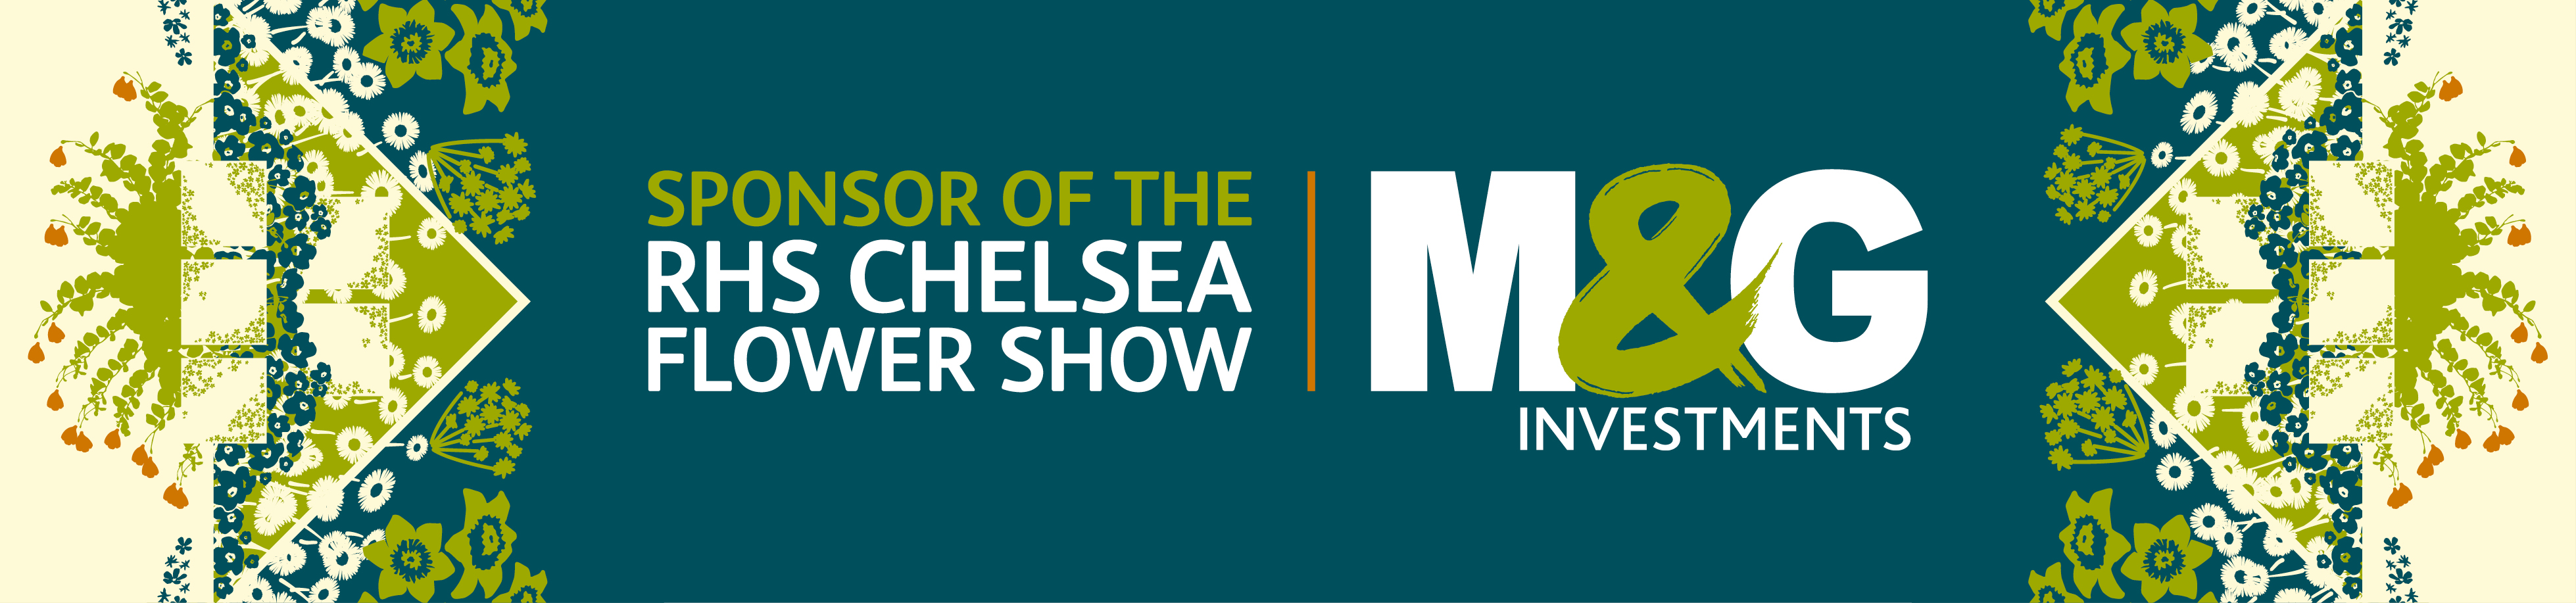 Chelsea flower show 2017 corporate entertainment packages - M G Investments